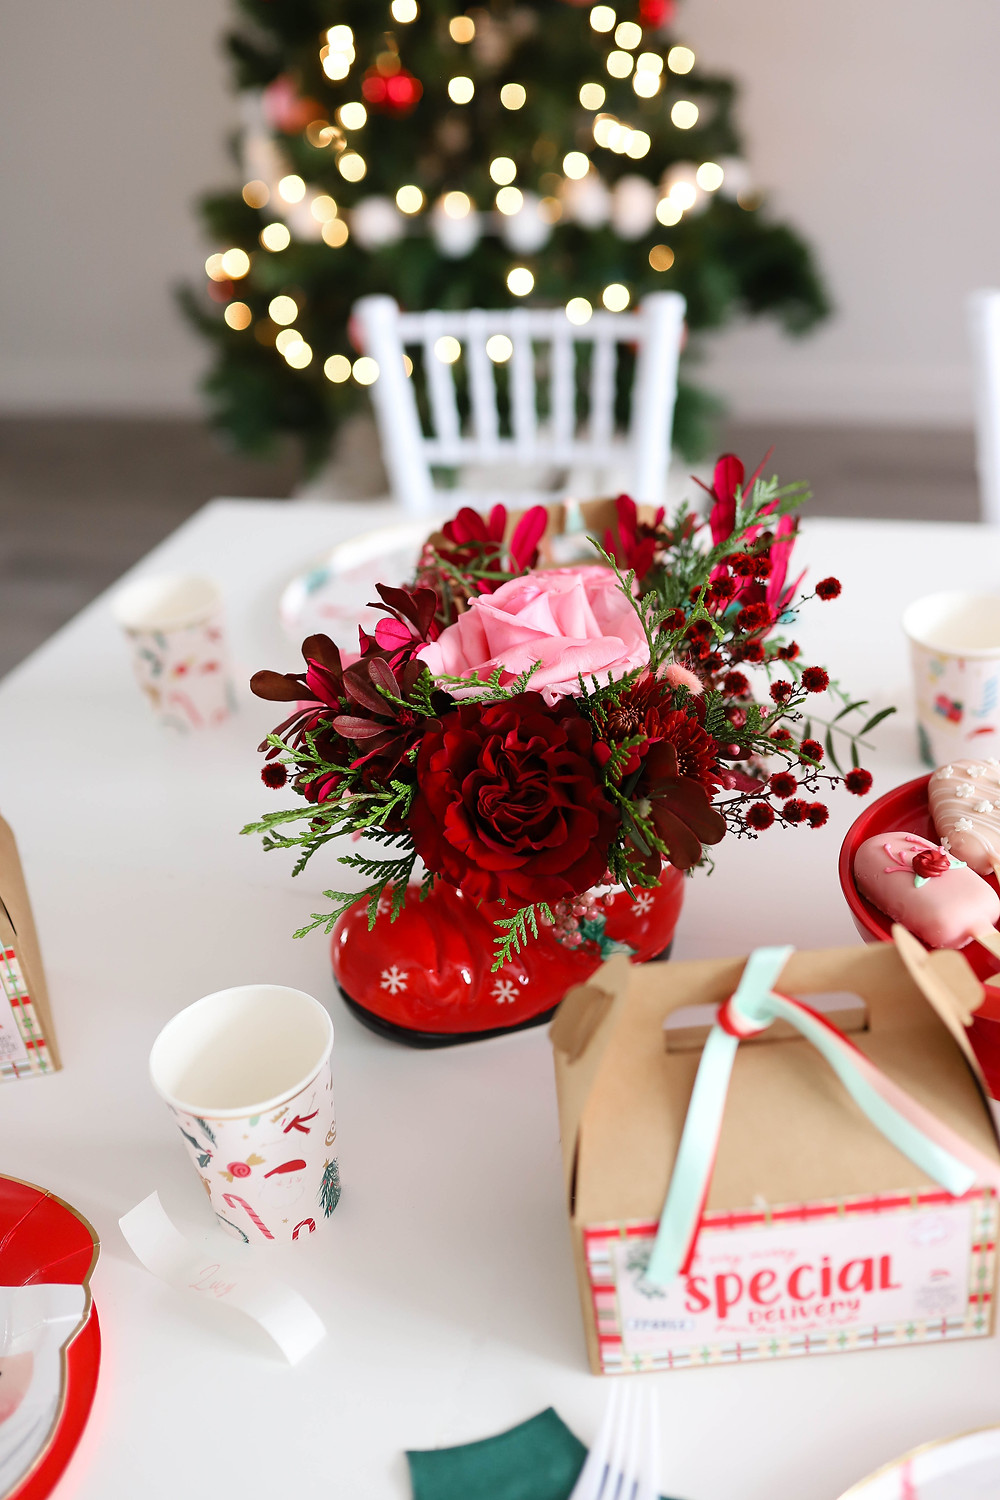 A red pink and green holiday floral bouquet set on a white table for christmas.